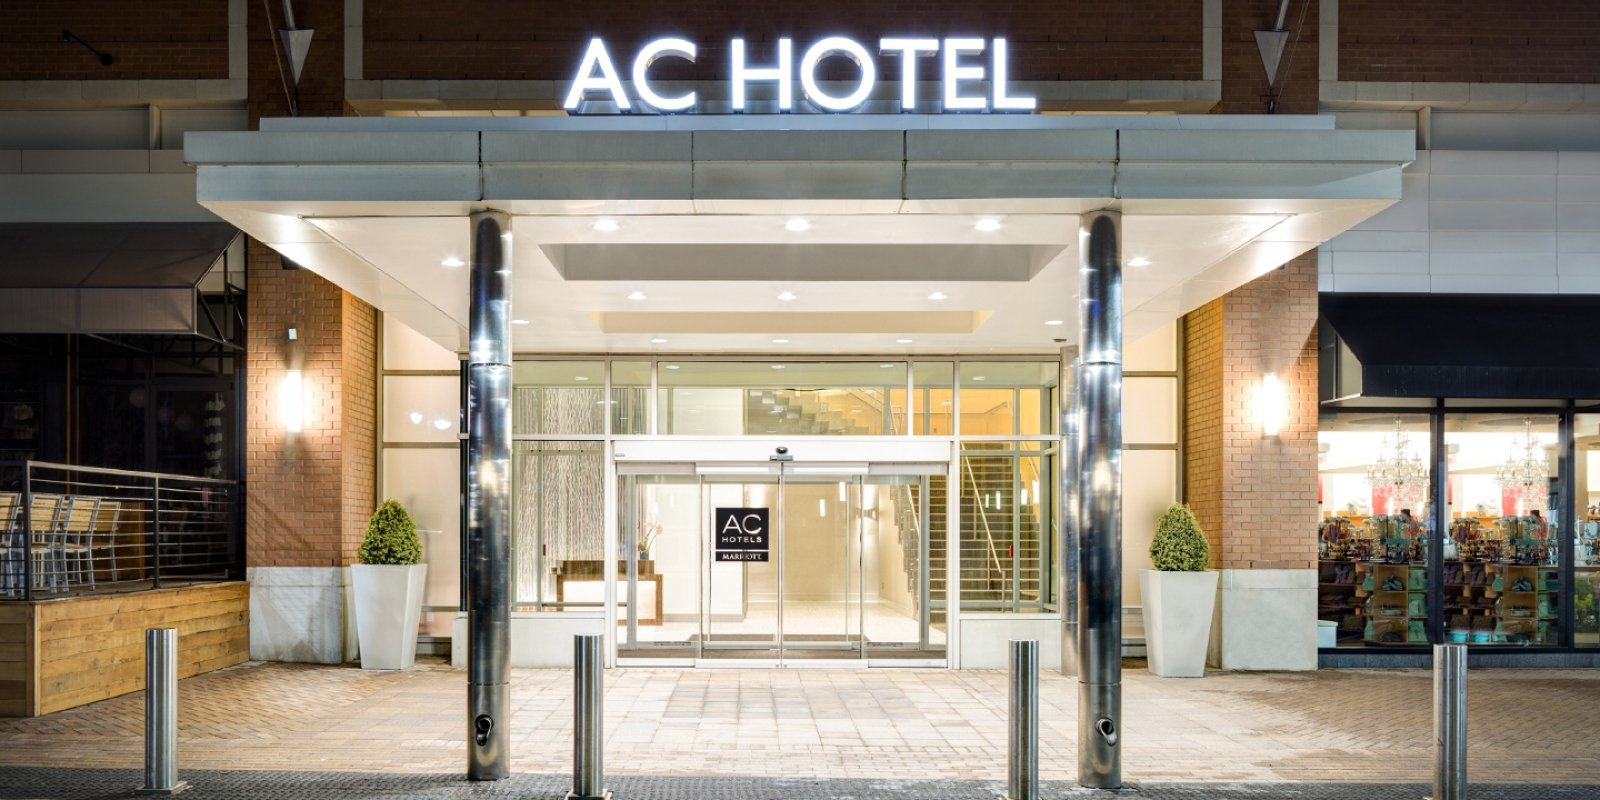 Hotel Design Ny Concord Hospitality To Operate The Upcoming Ac Hotel New